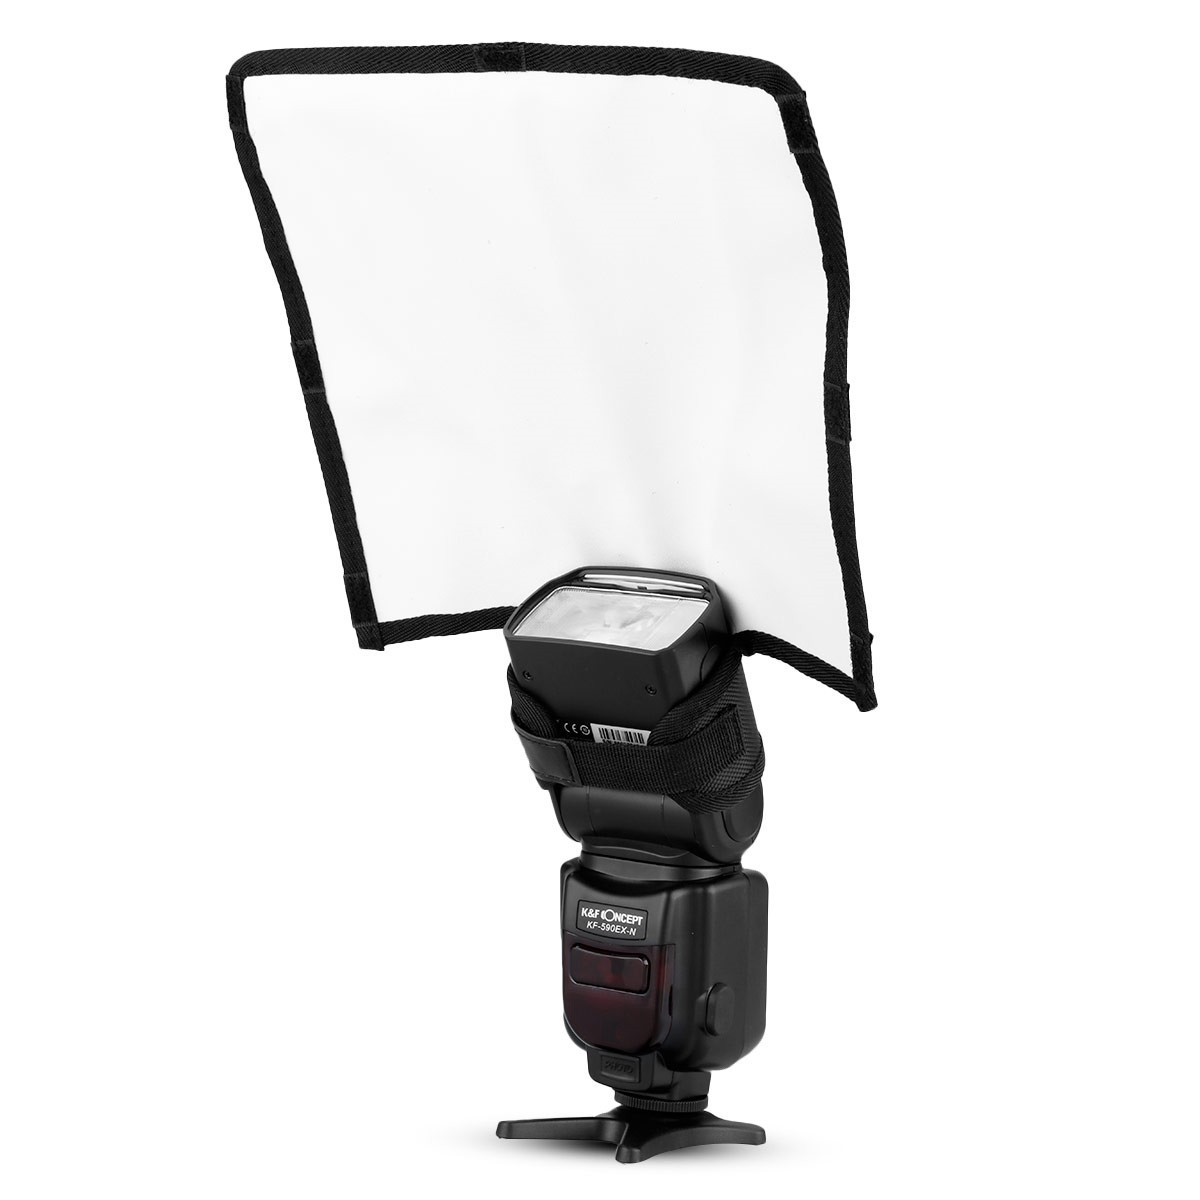 Buy Generic Flash Reflector Board Beam Light Tube Black Best Universal Diffuser 1 X Foldable Snoot Gobo Lambency For Nikon Speedlite Sb 600 800 900 Canon 380ex 430ex 550ex 580ex Vivita